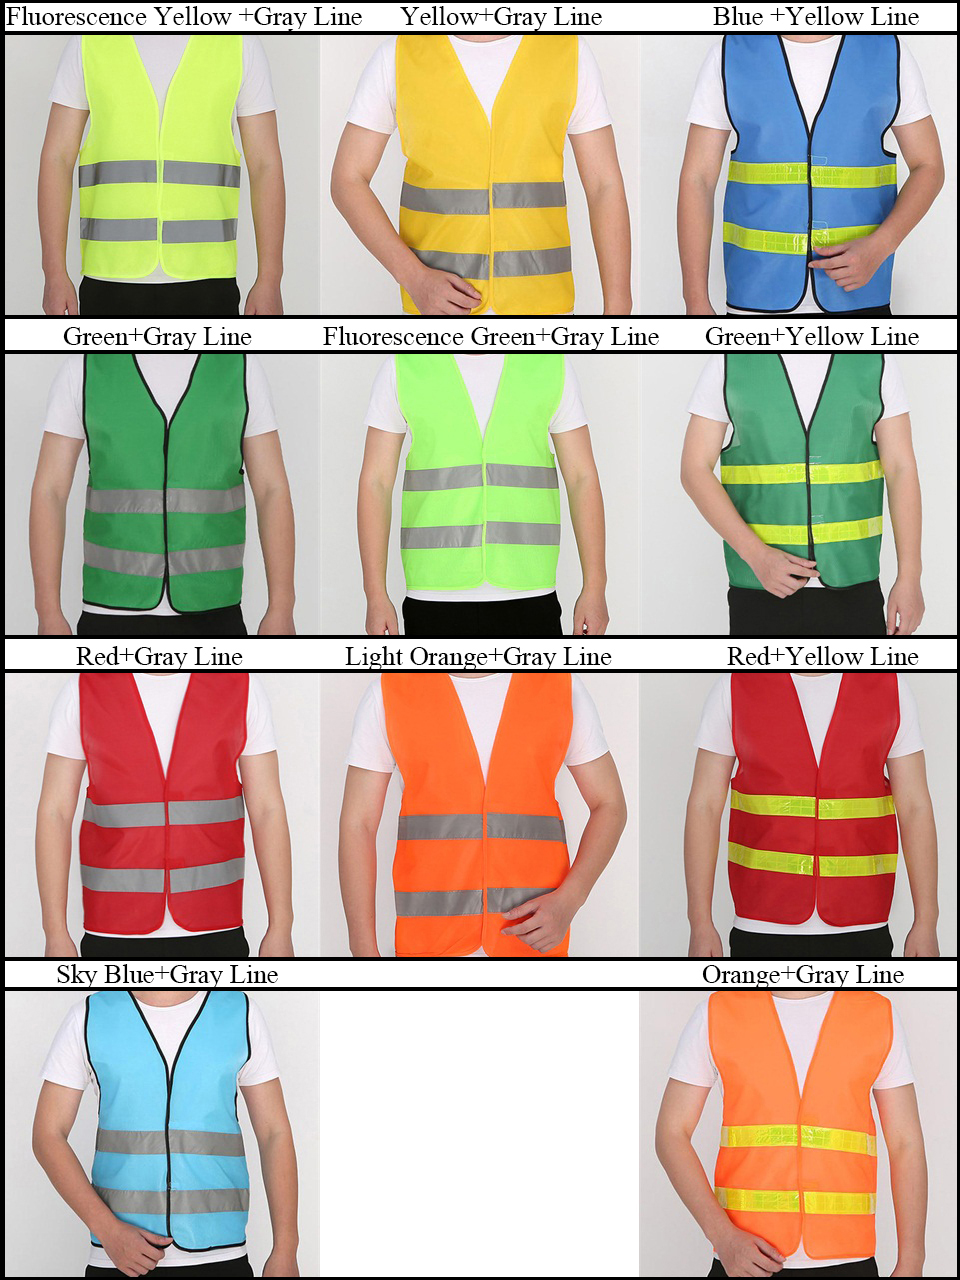 2019 New Hiah Quality Yellow Vest Reflective Safety Workwear Night Warning Working Clothes Fluorescent For Man Women